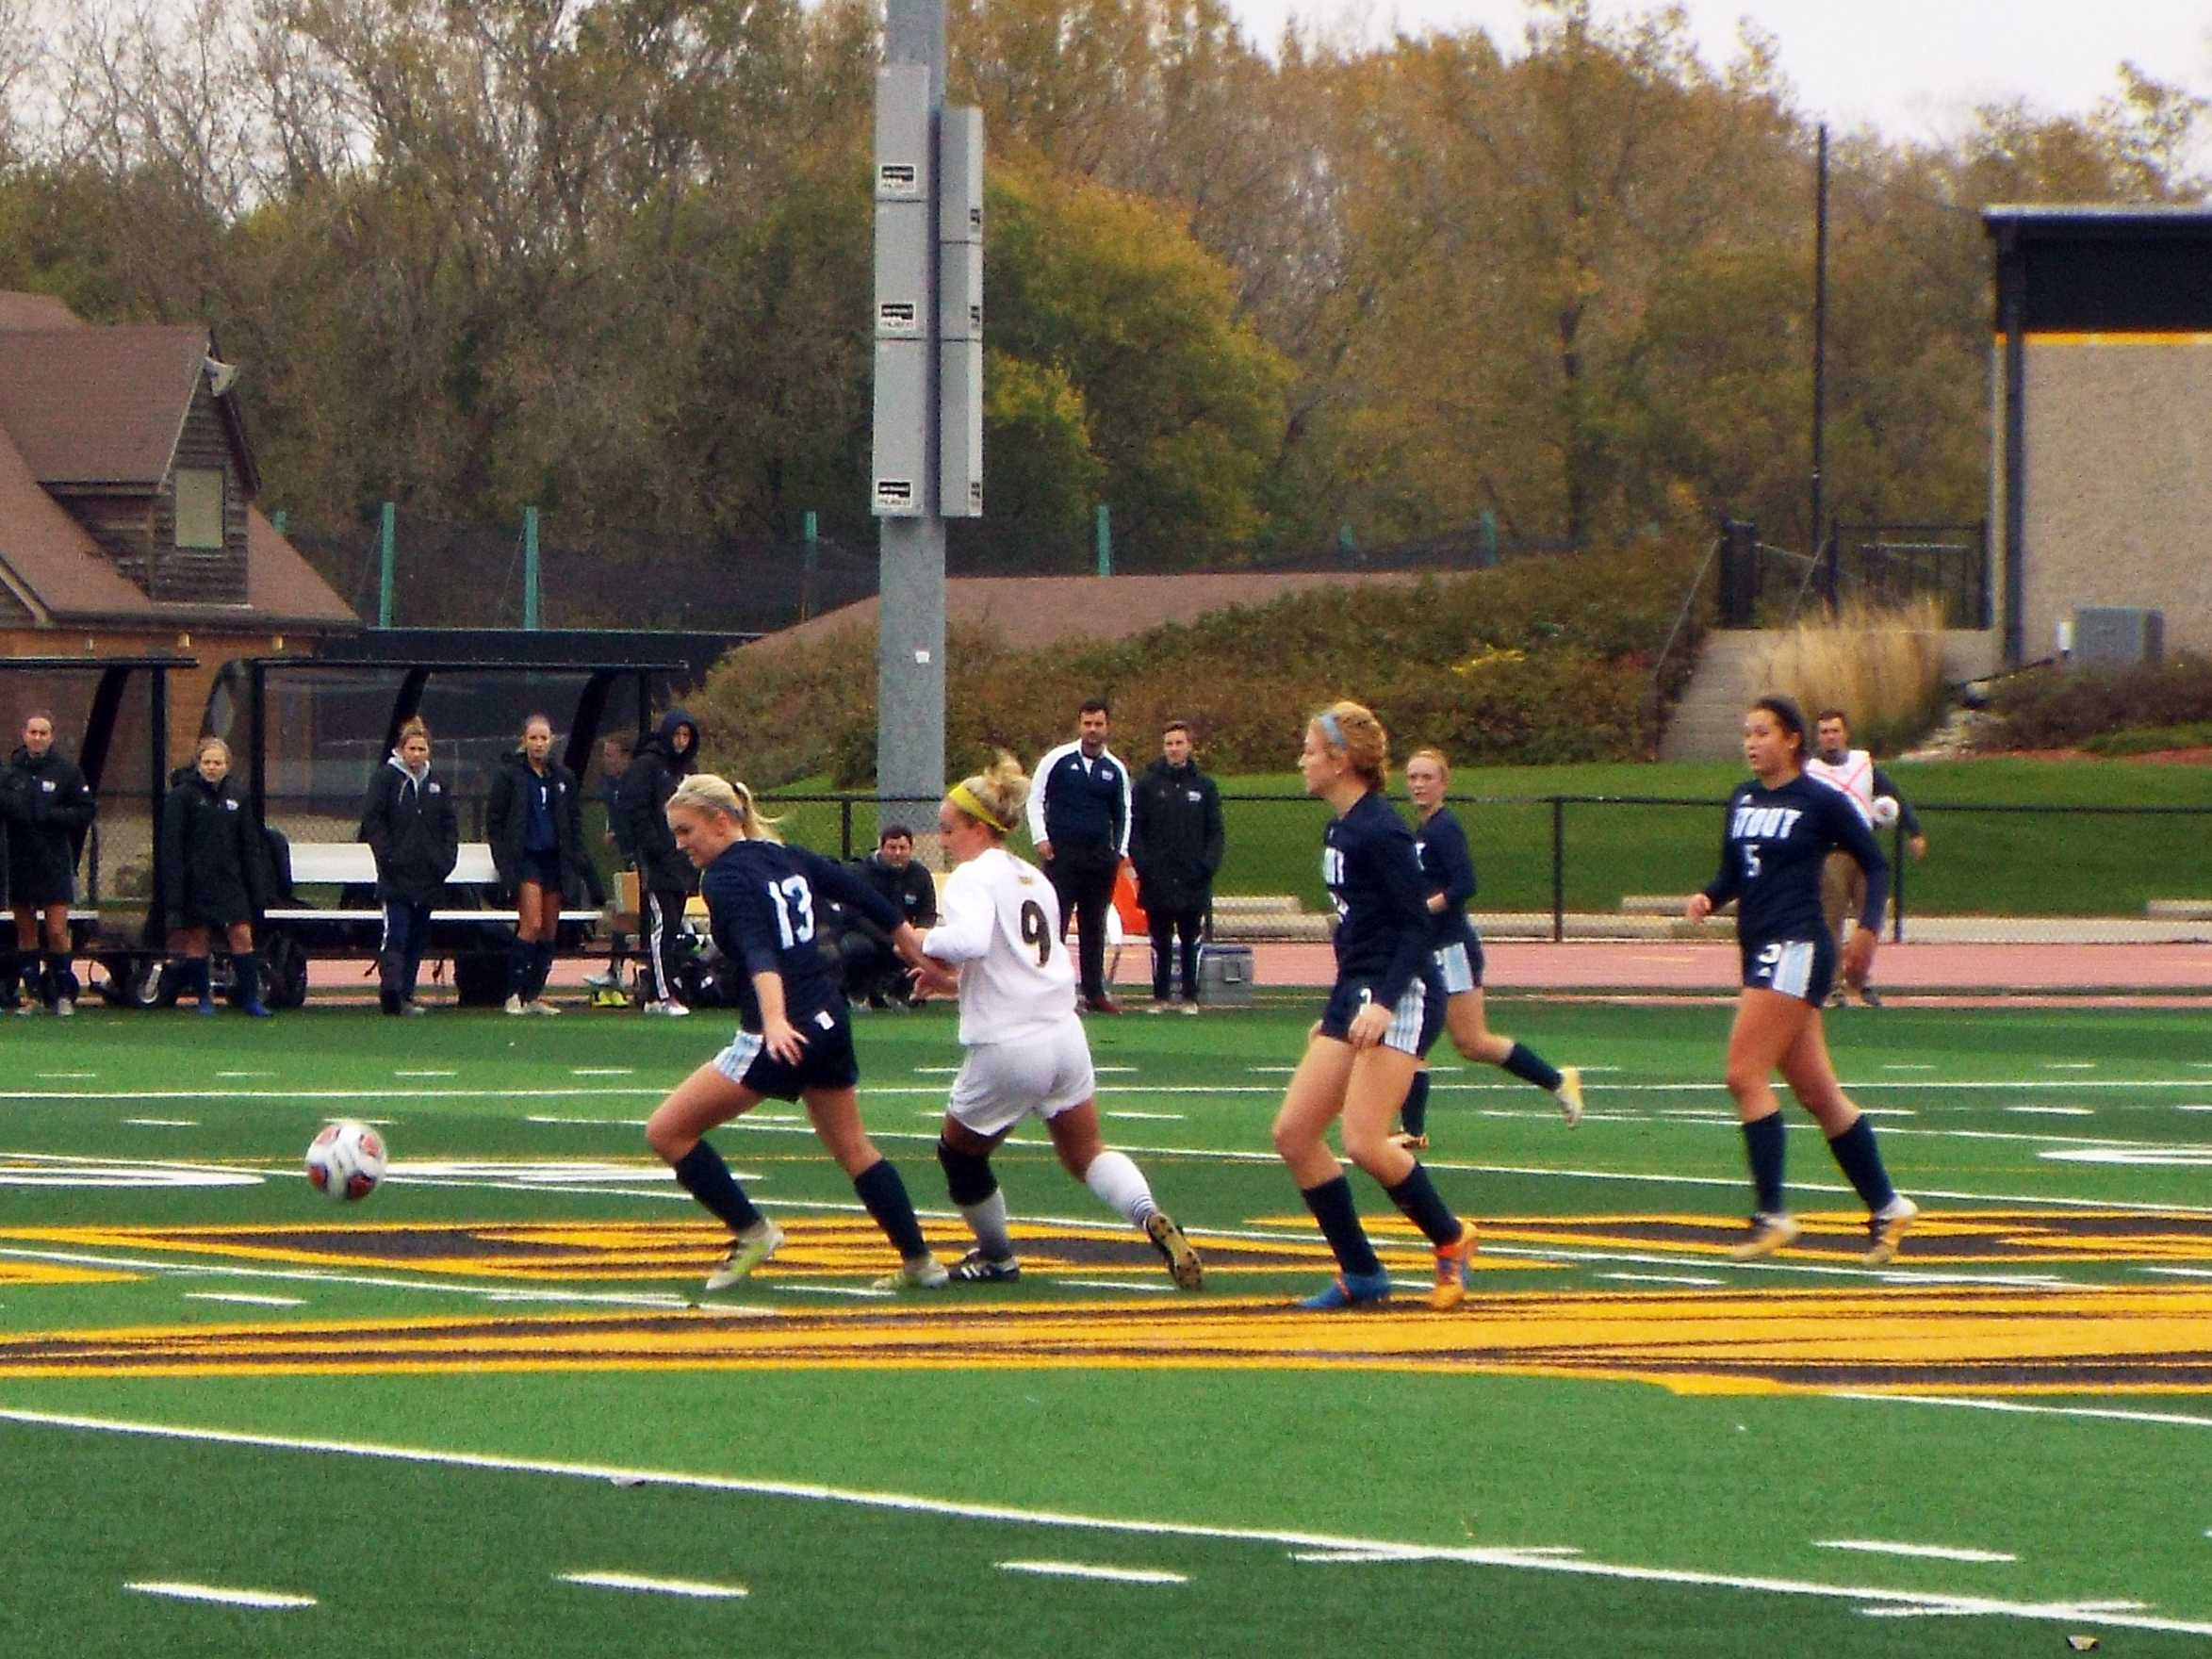 Women's soccer plays for a cause